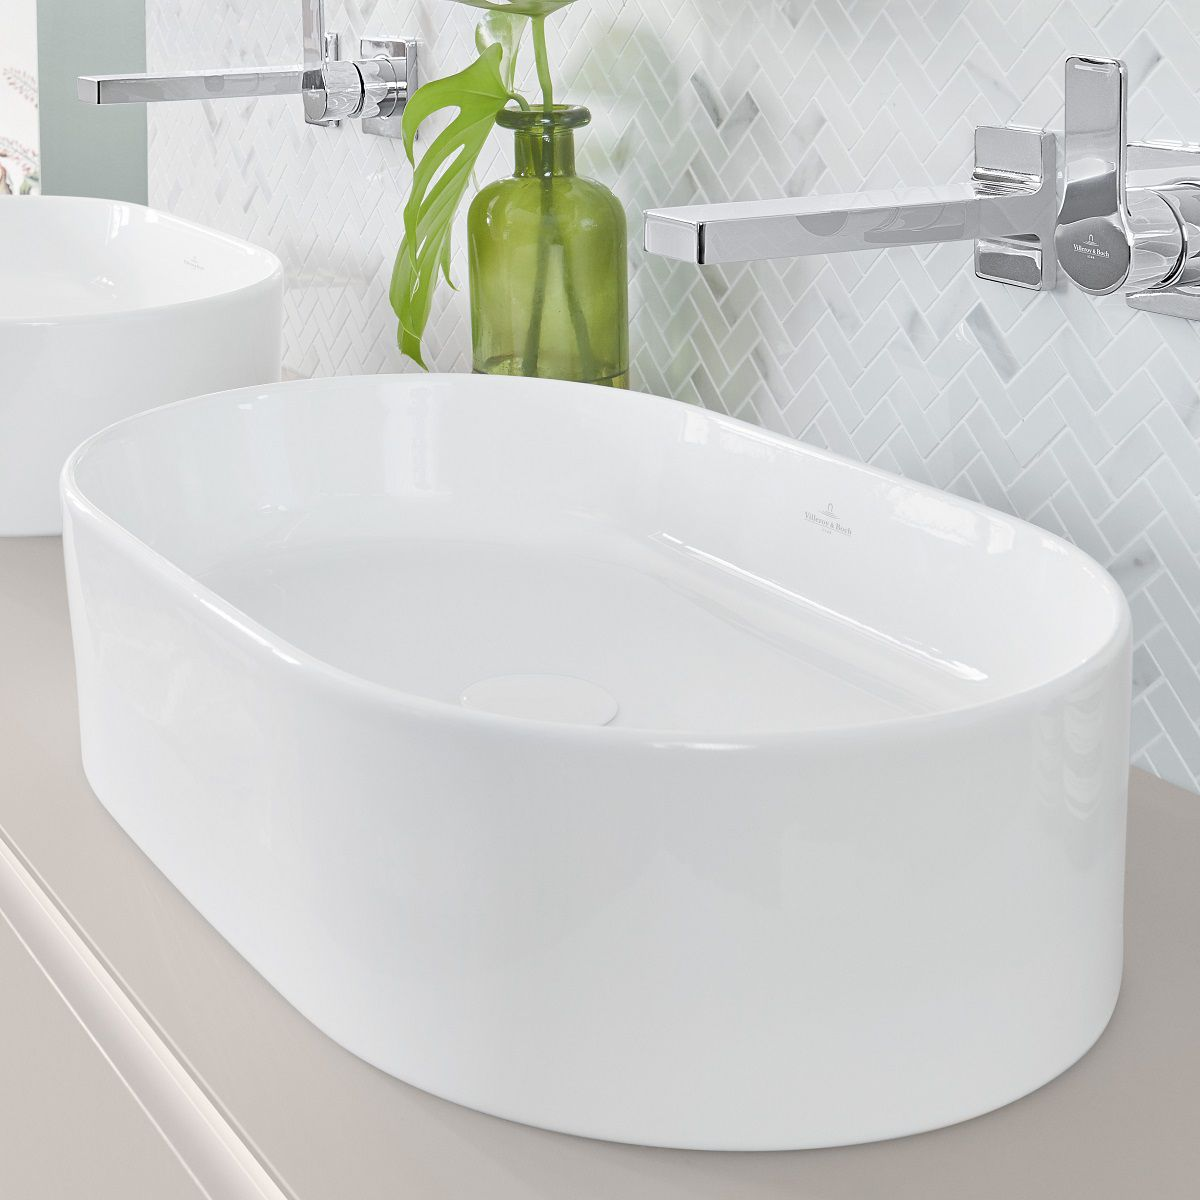 Villeroy & Boch Collaro Oval Countertop Basin